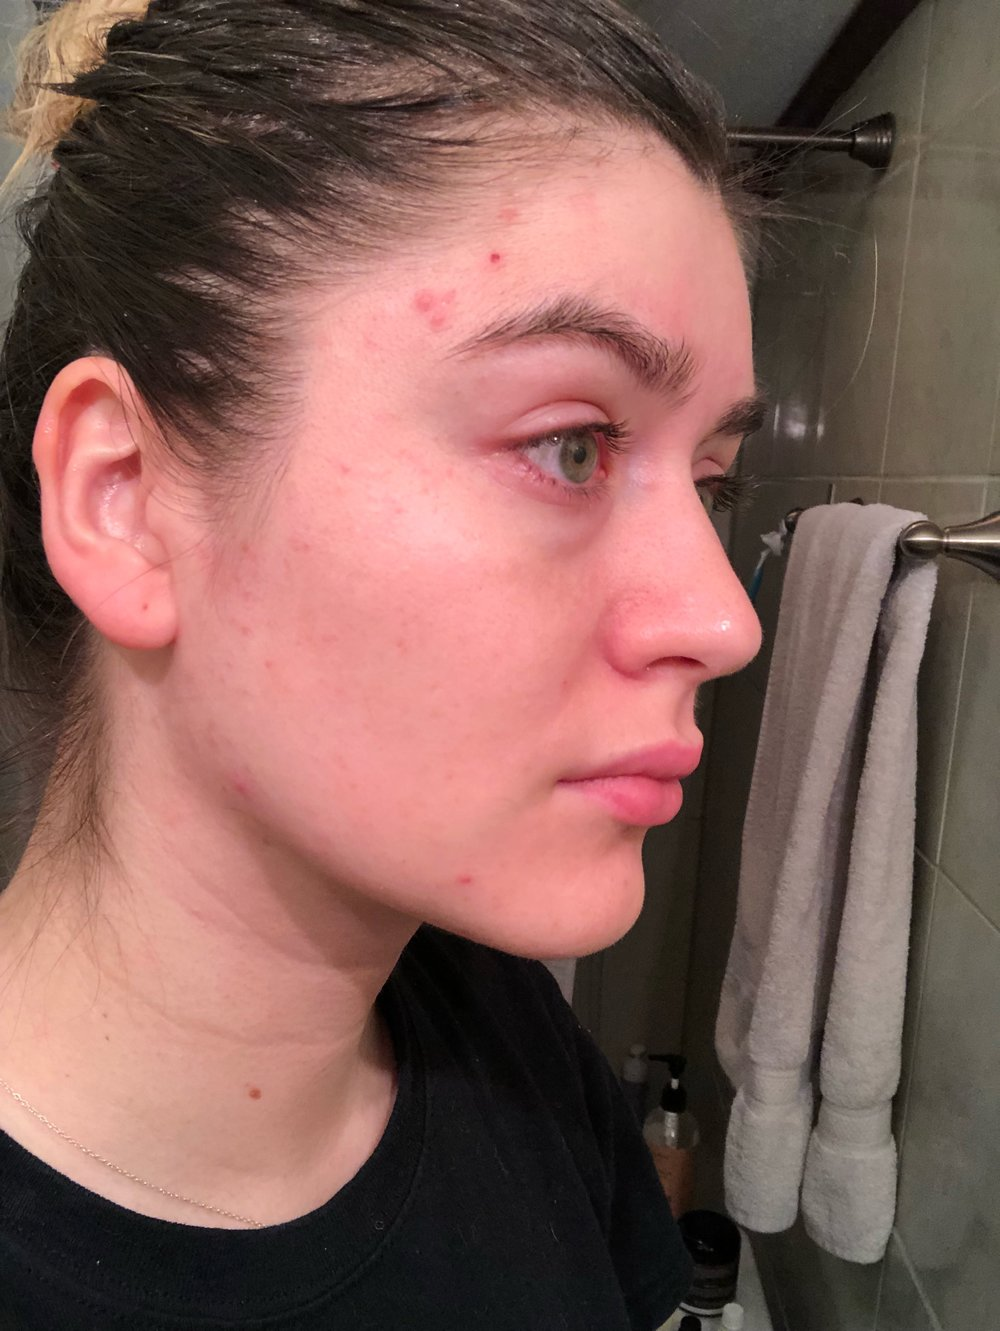 Adult acne is really a result of these things: our diets and us not listening to what our bodies aren't cool with anymore, hormones being out of whack, ...